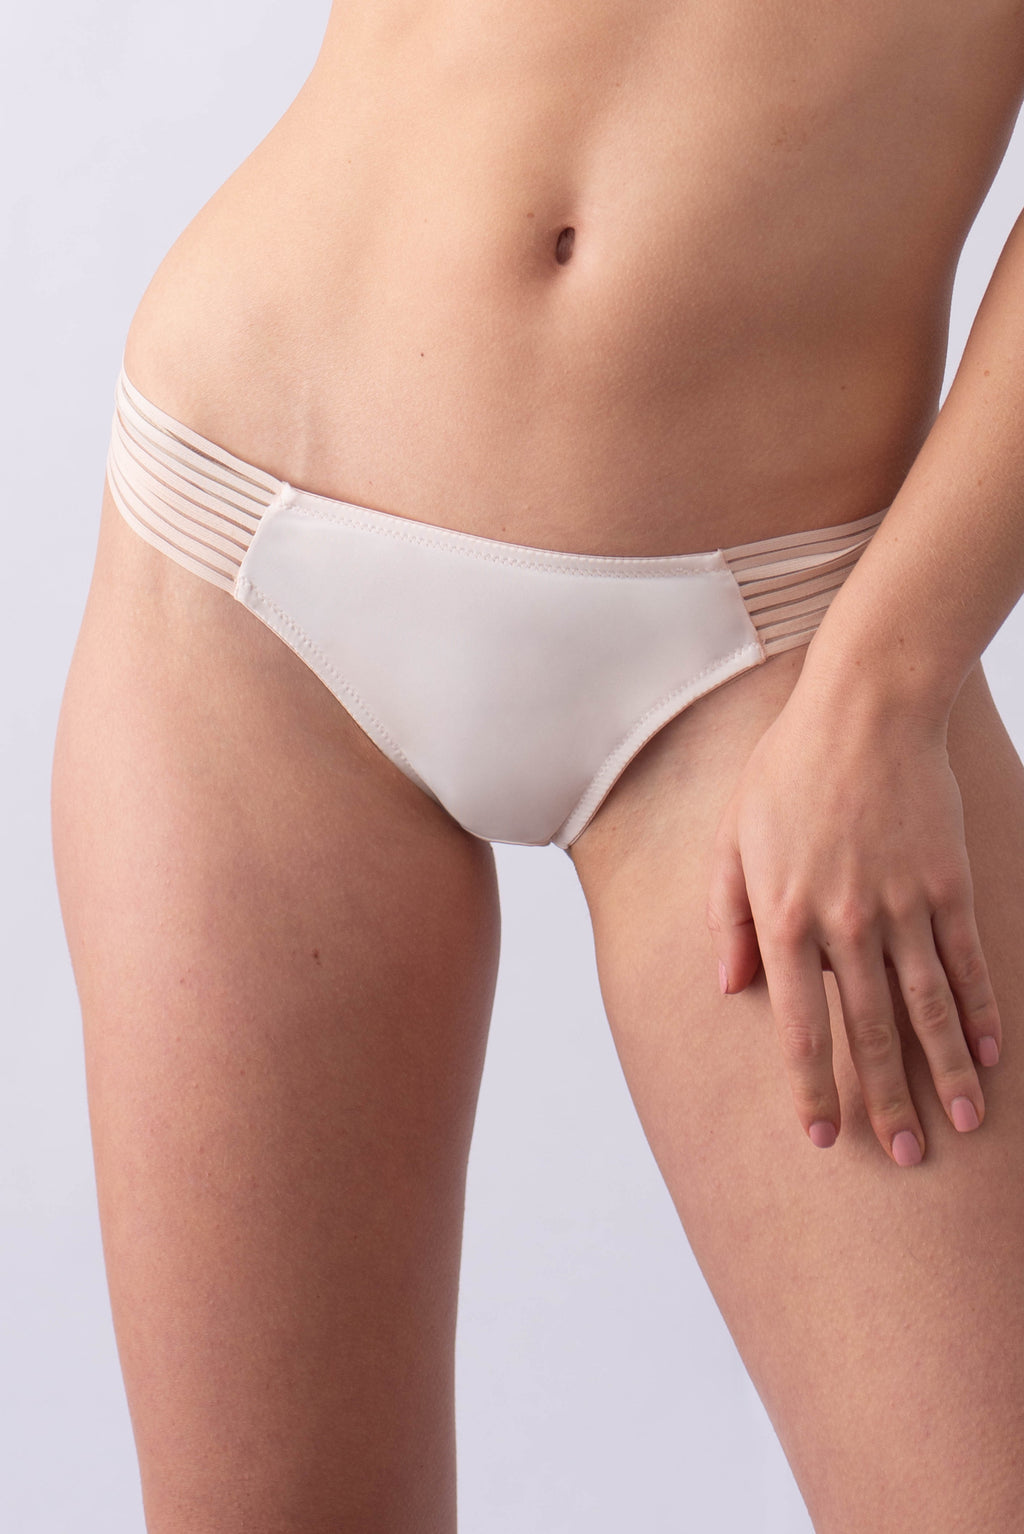 PROJECTME AMBITION SHELL BRAZILLIAN BRIEF